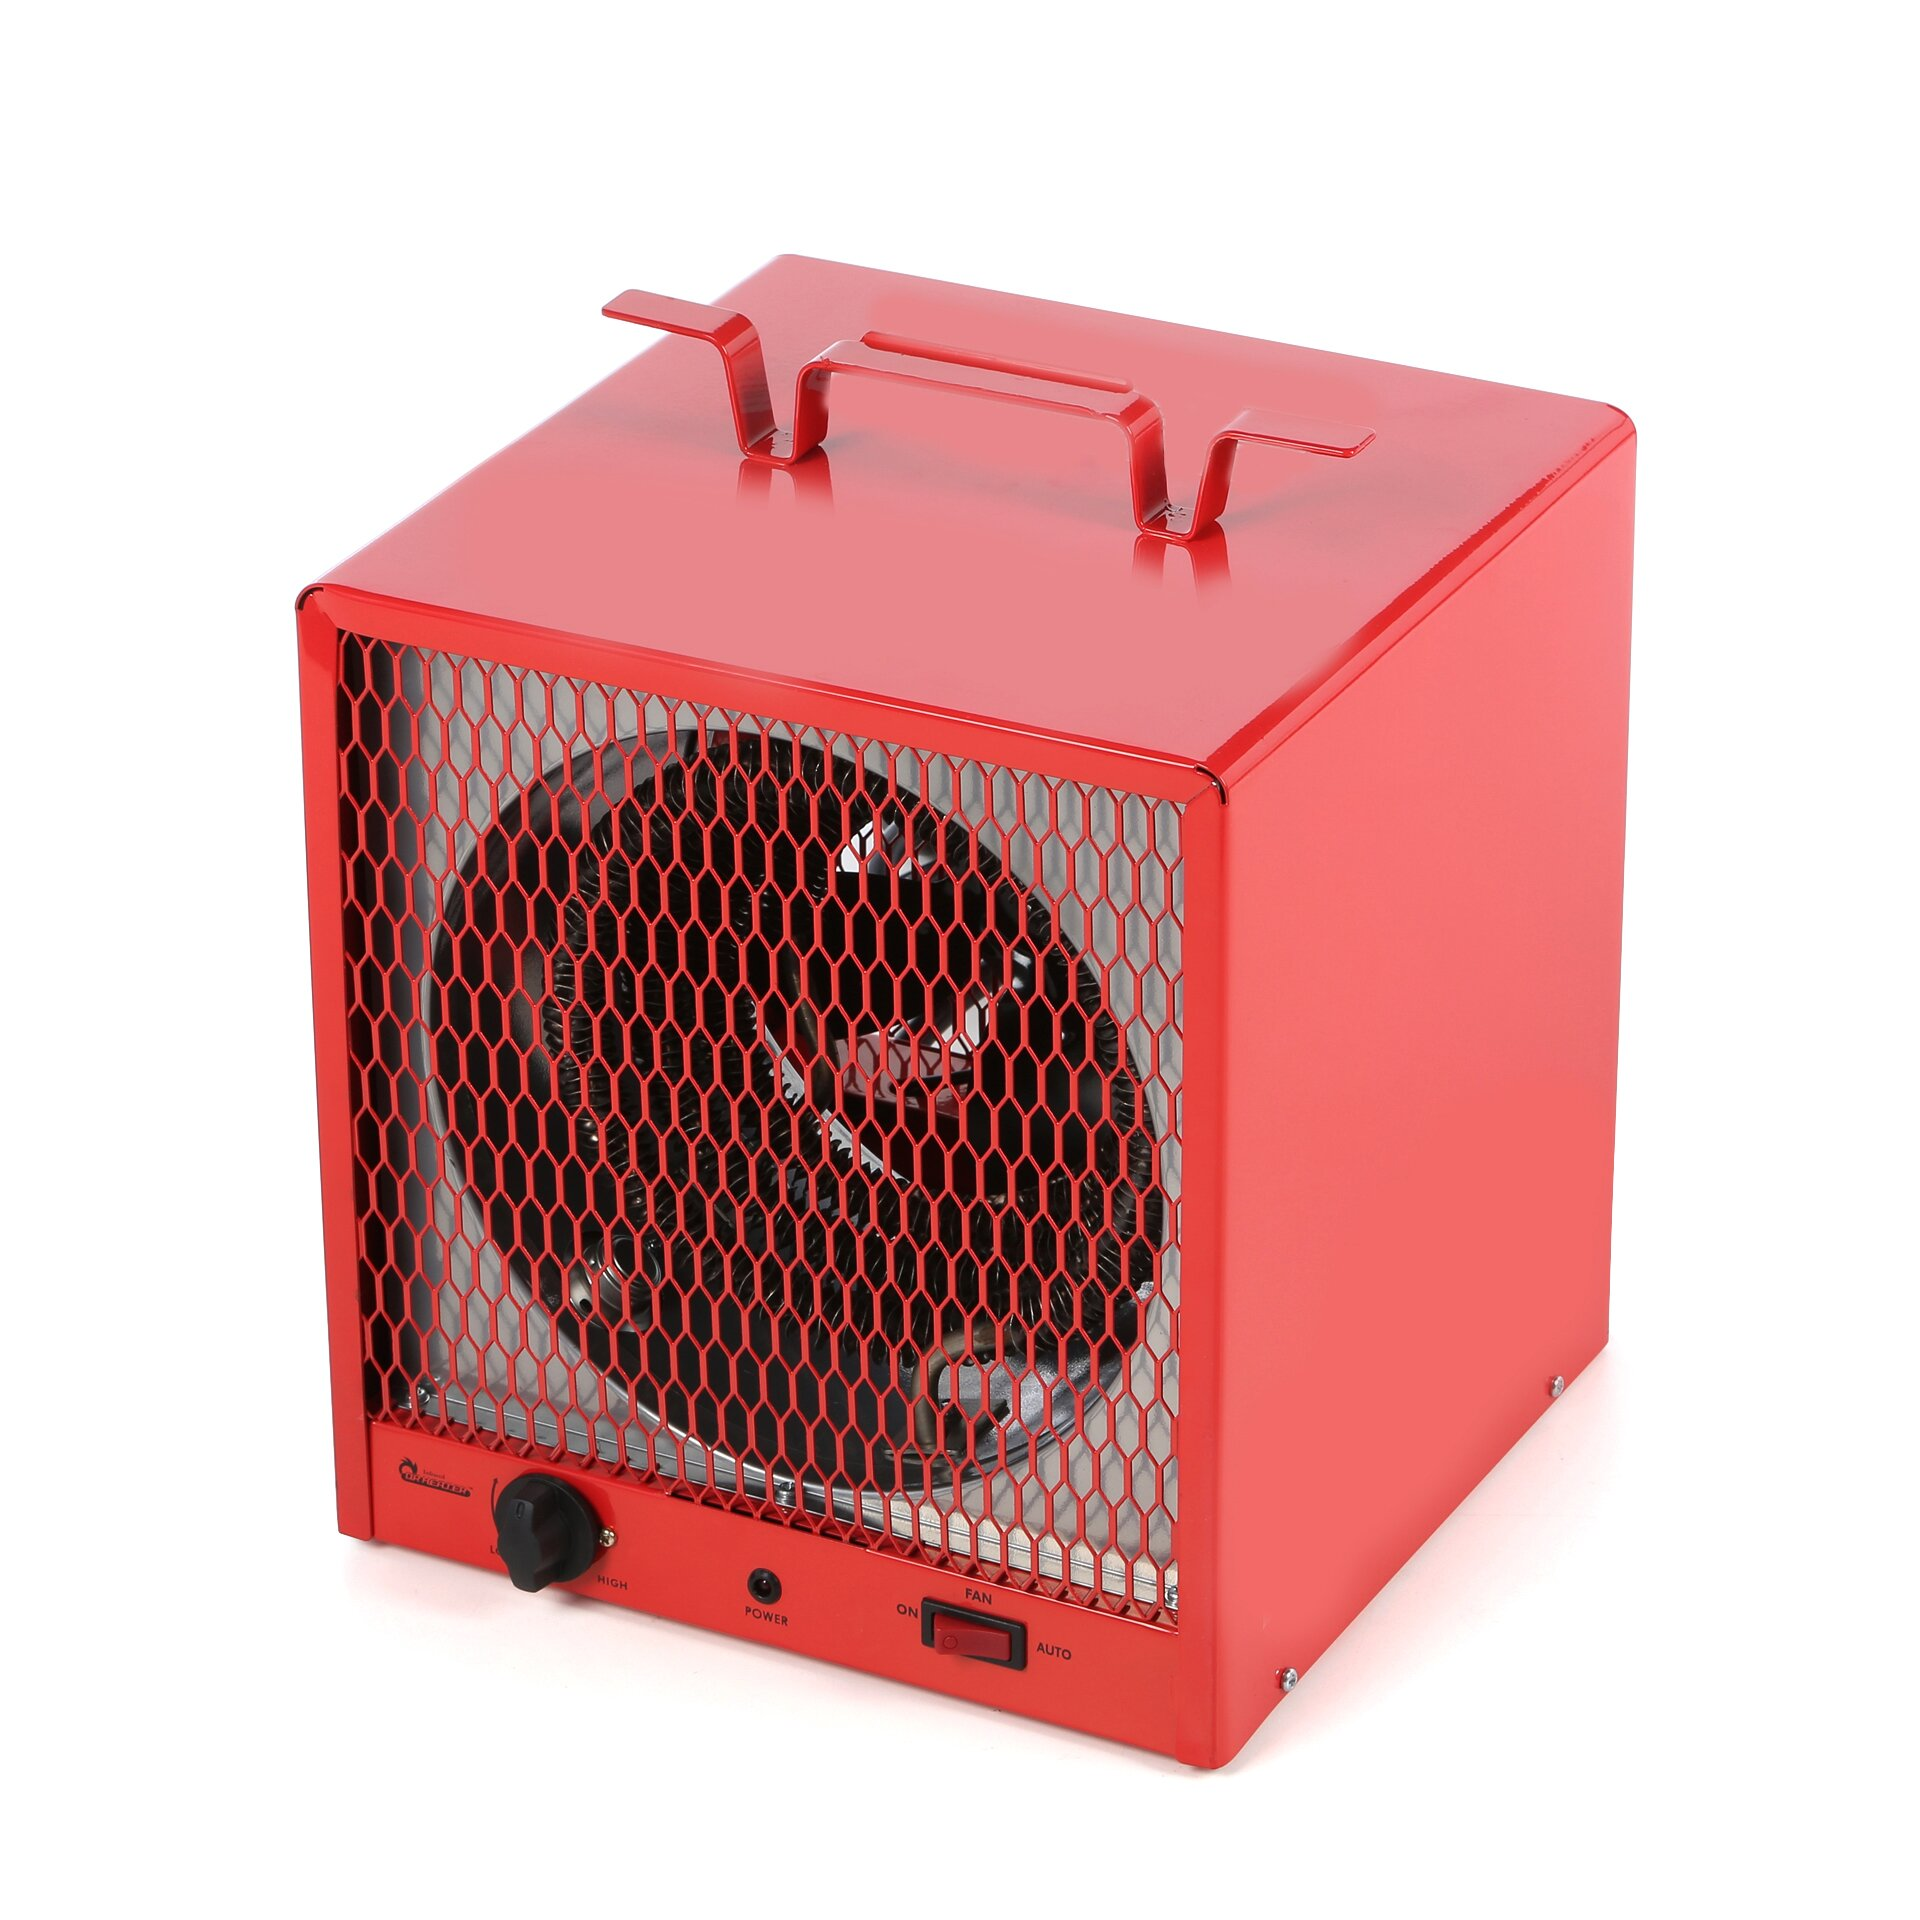 Dr. Infrared Heater Industrial Heater 19,110 BTU Portable Electric Fan